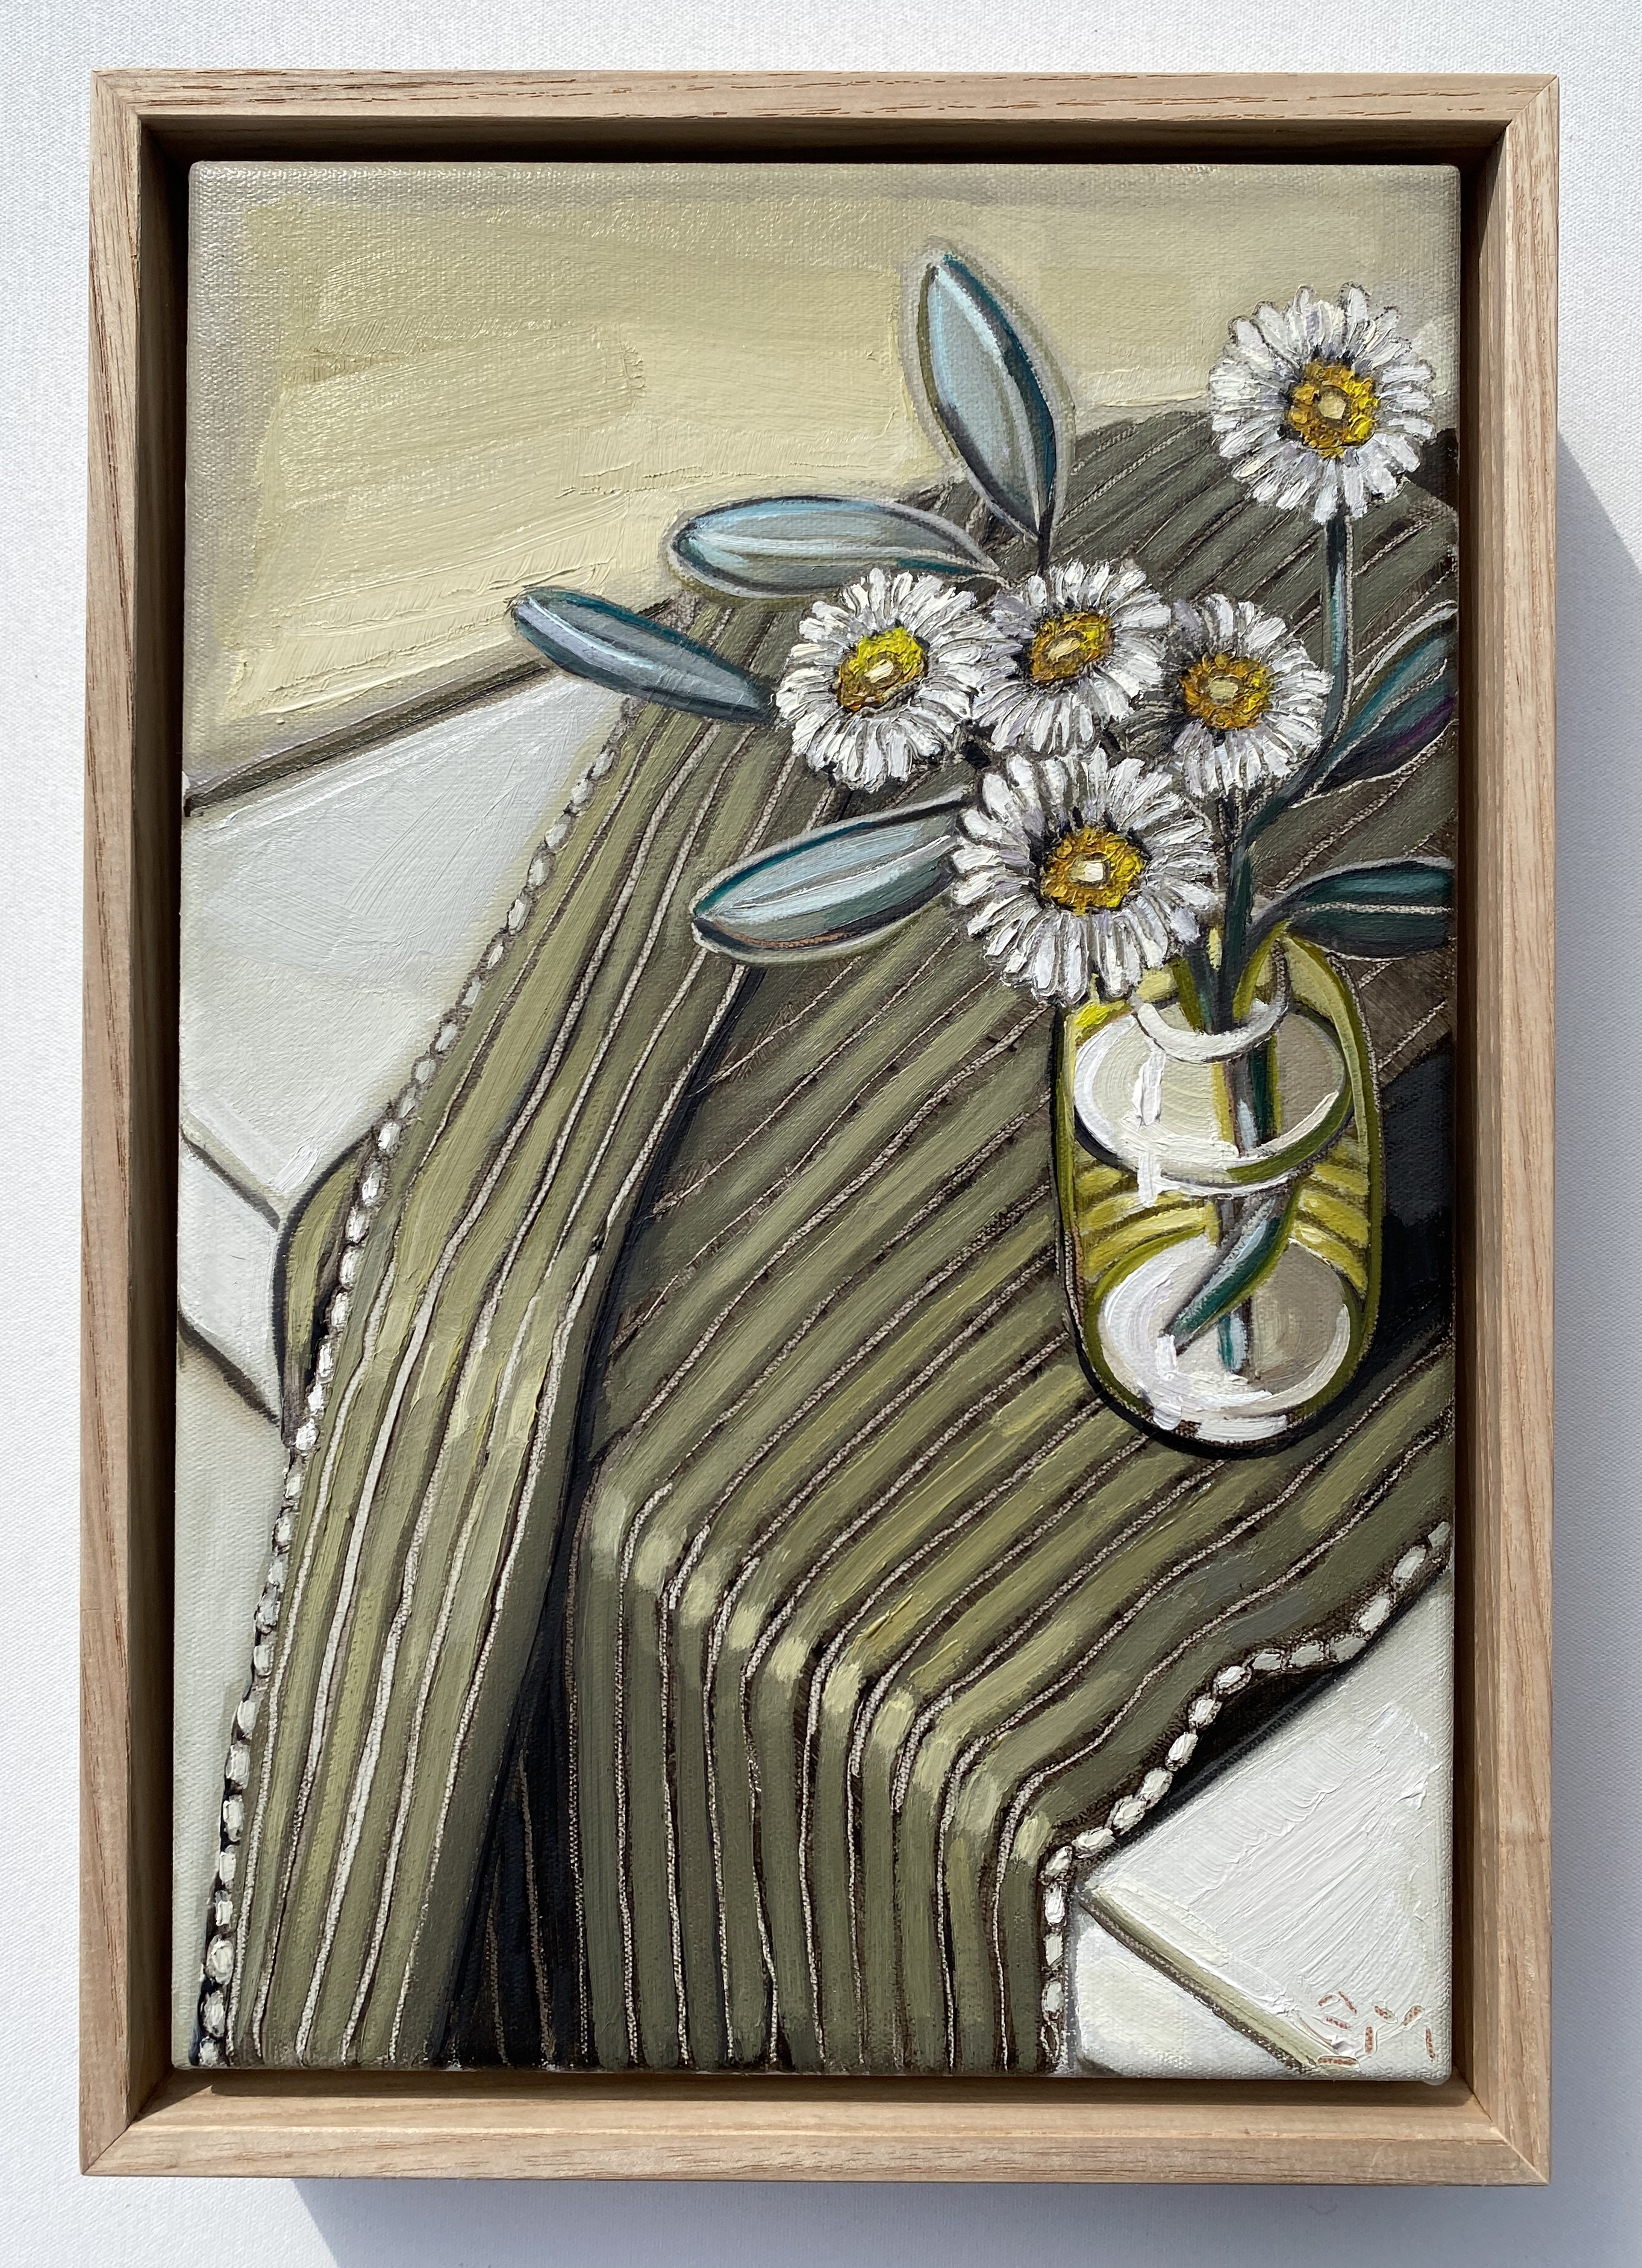 sam michelle 'malborough rock daisy nz' 33x23cm